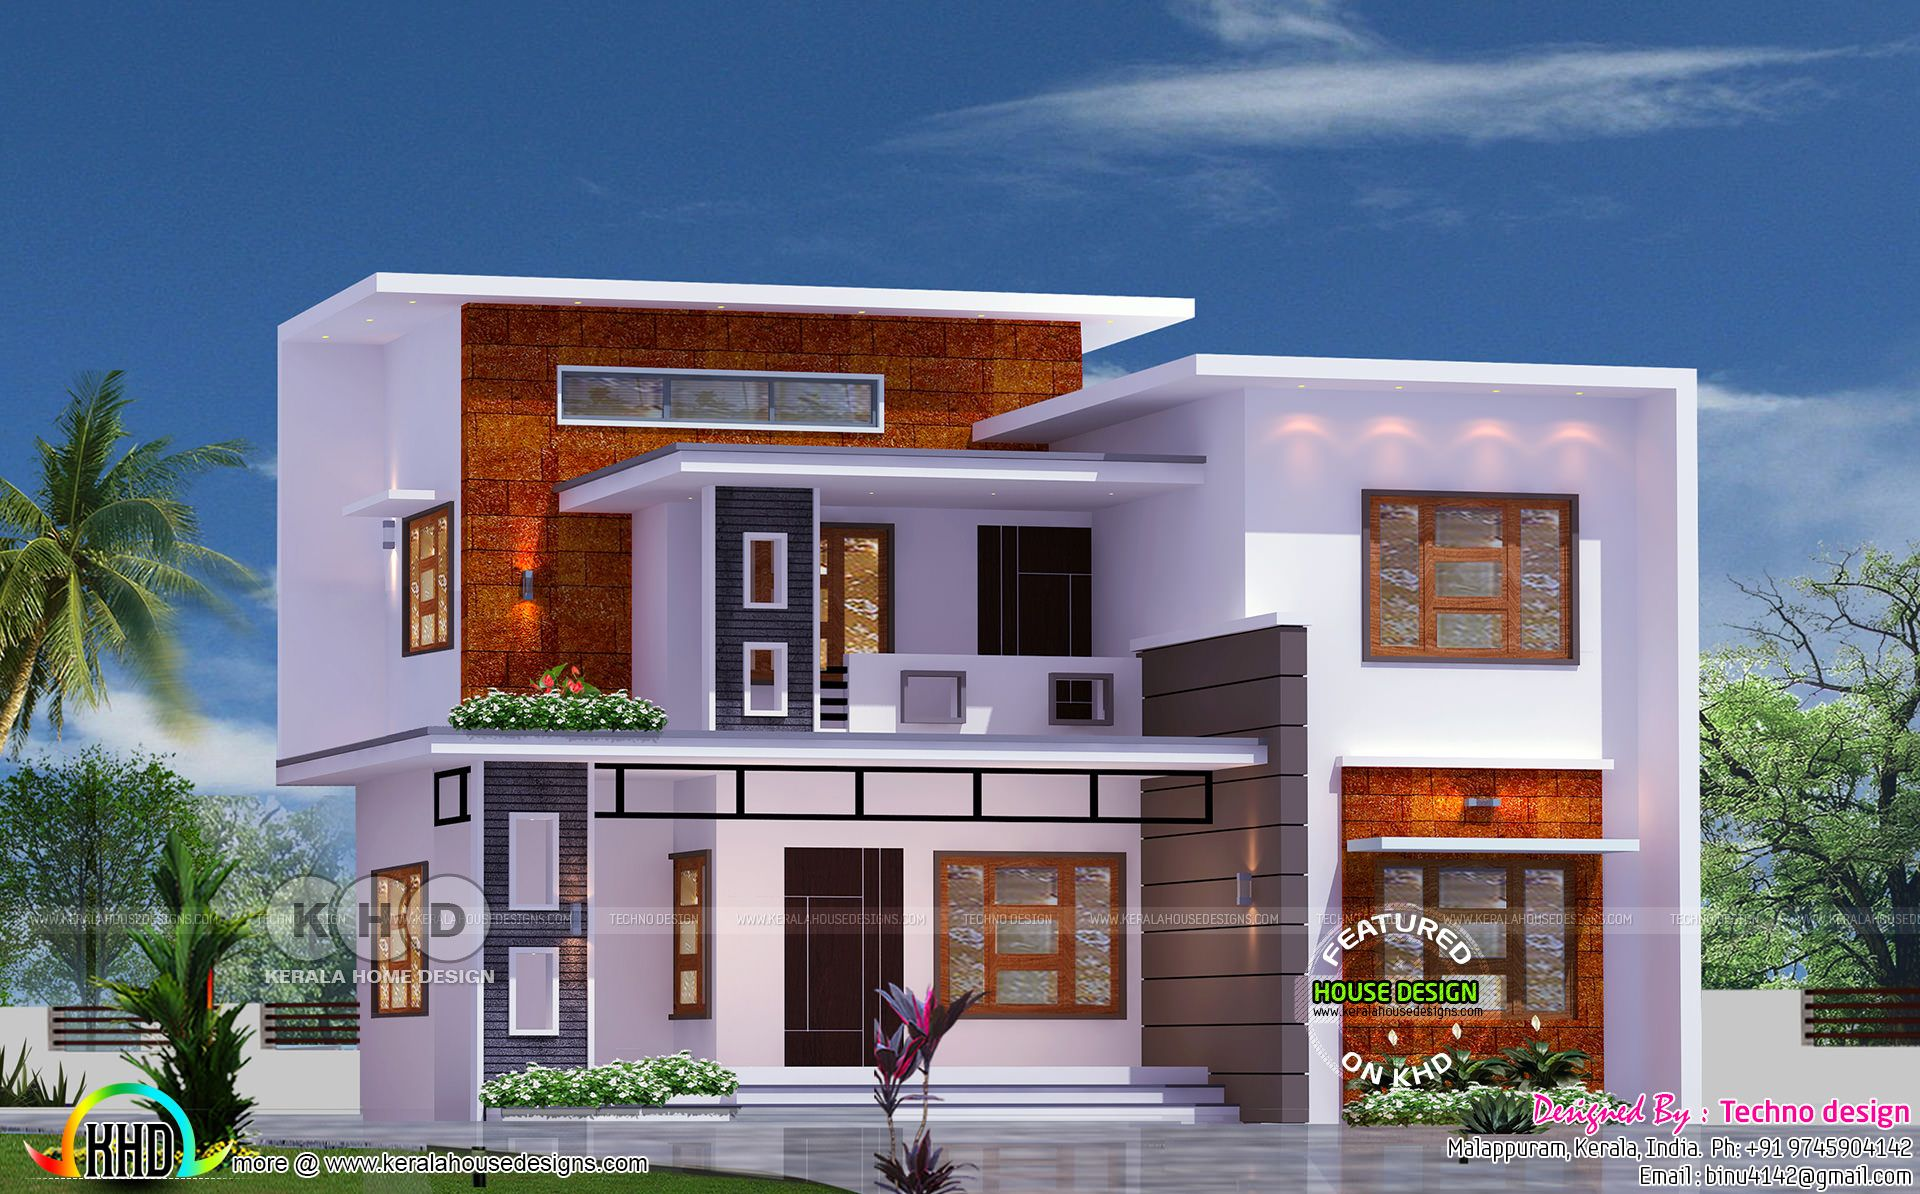 20 Lakhs 4 Bhk Home 1580 Sq Ft In 2020 Kerala House Design Duplex House Design House Outside Design